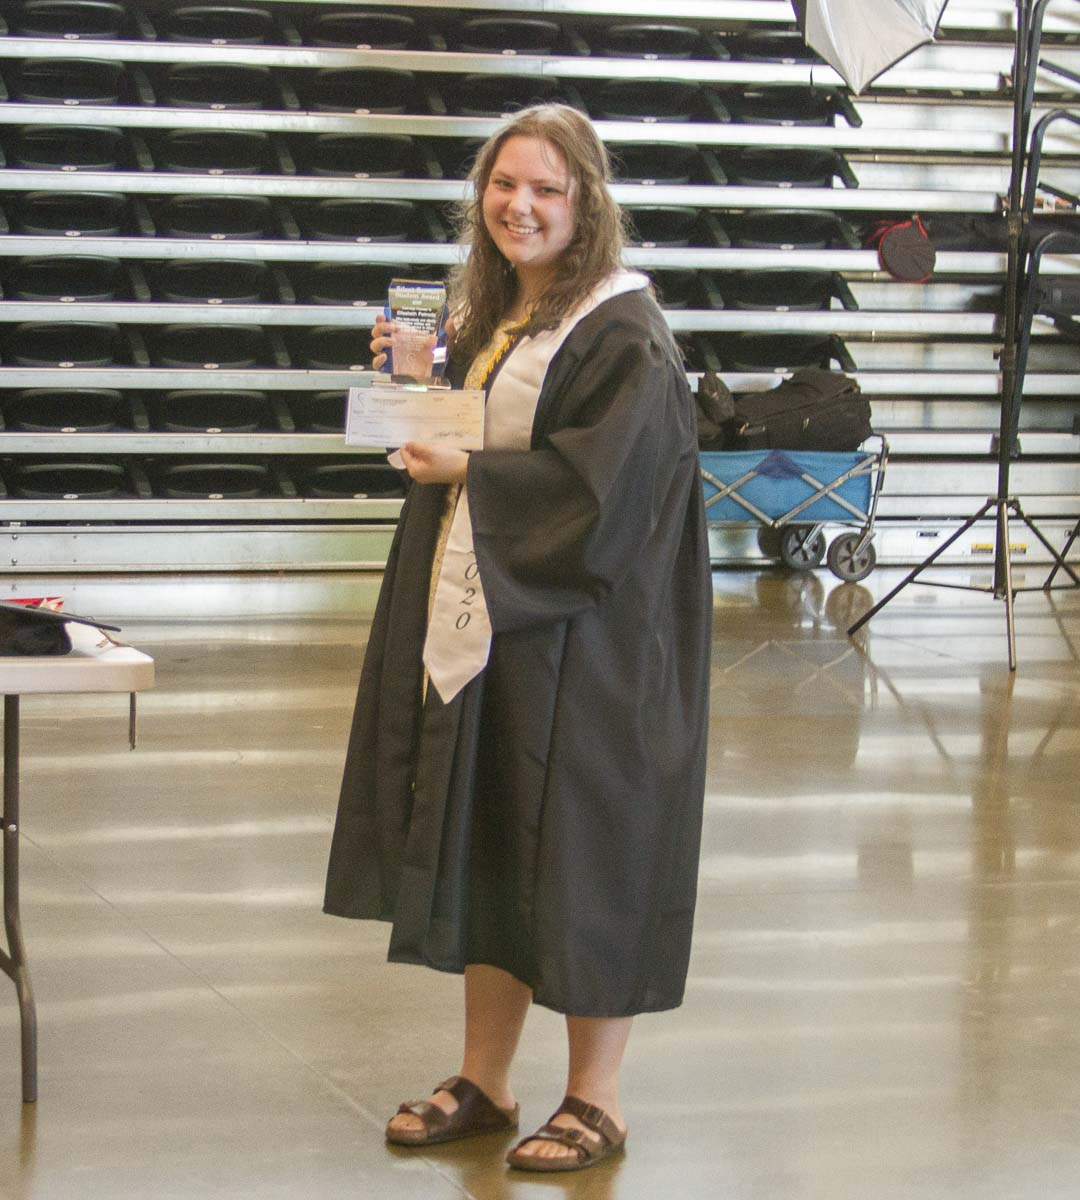 Following graduation from high school this summer, Elisabeth Patnode received the award for the countless hours of community service she performed. Photo courtesy of Woodland Public Schools